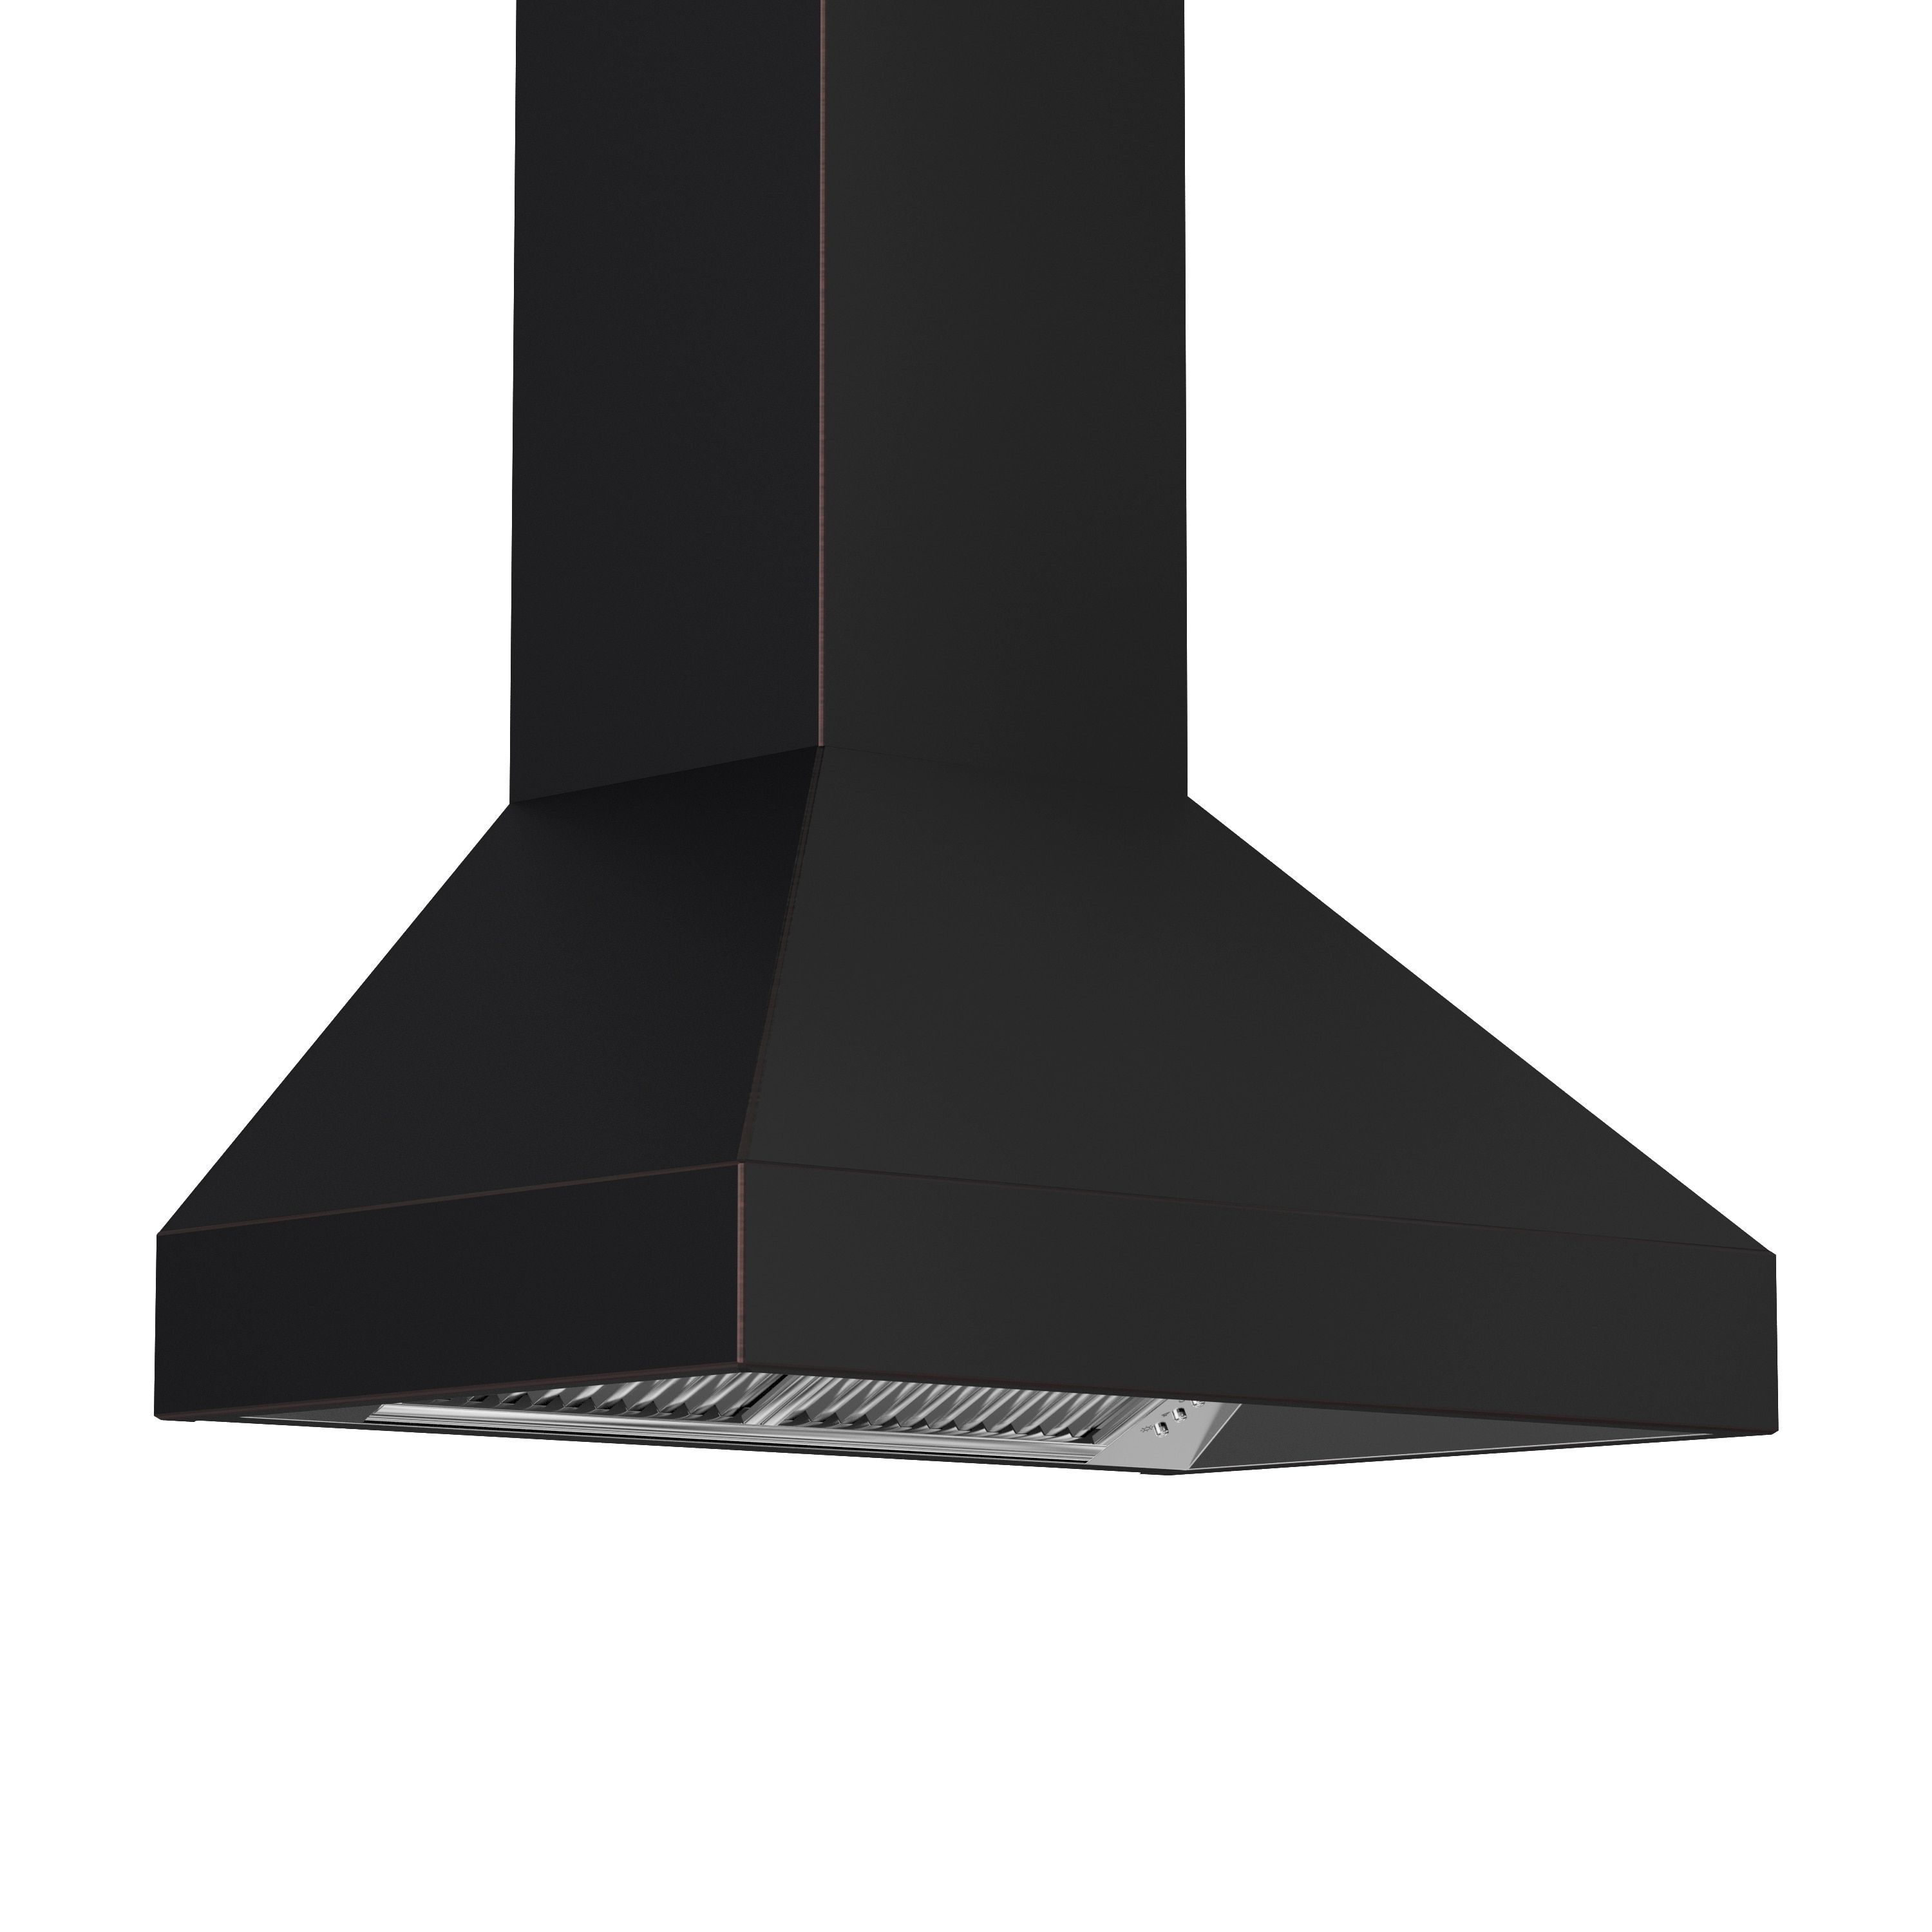 Online Shopping Bedding Furniture Electronics Jewelry Clothing More Wall Mount Range Hood Oil Rubbed Bronze Stainless Steel Range Hood